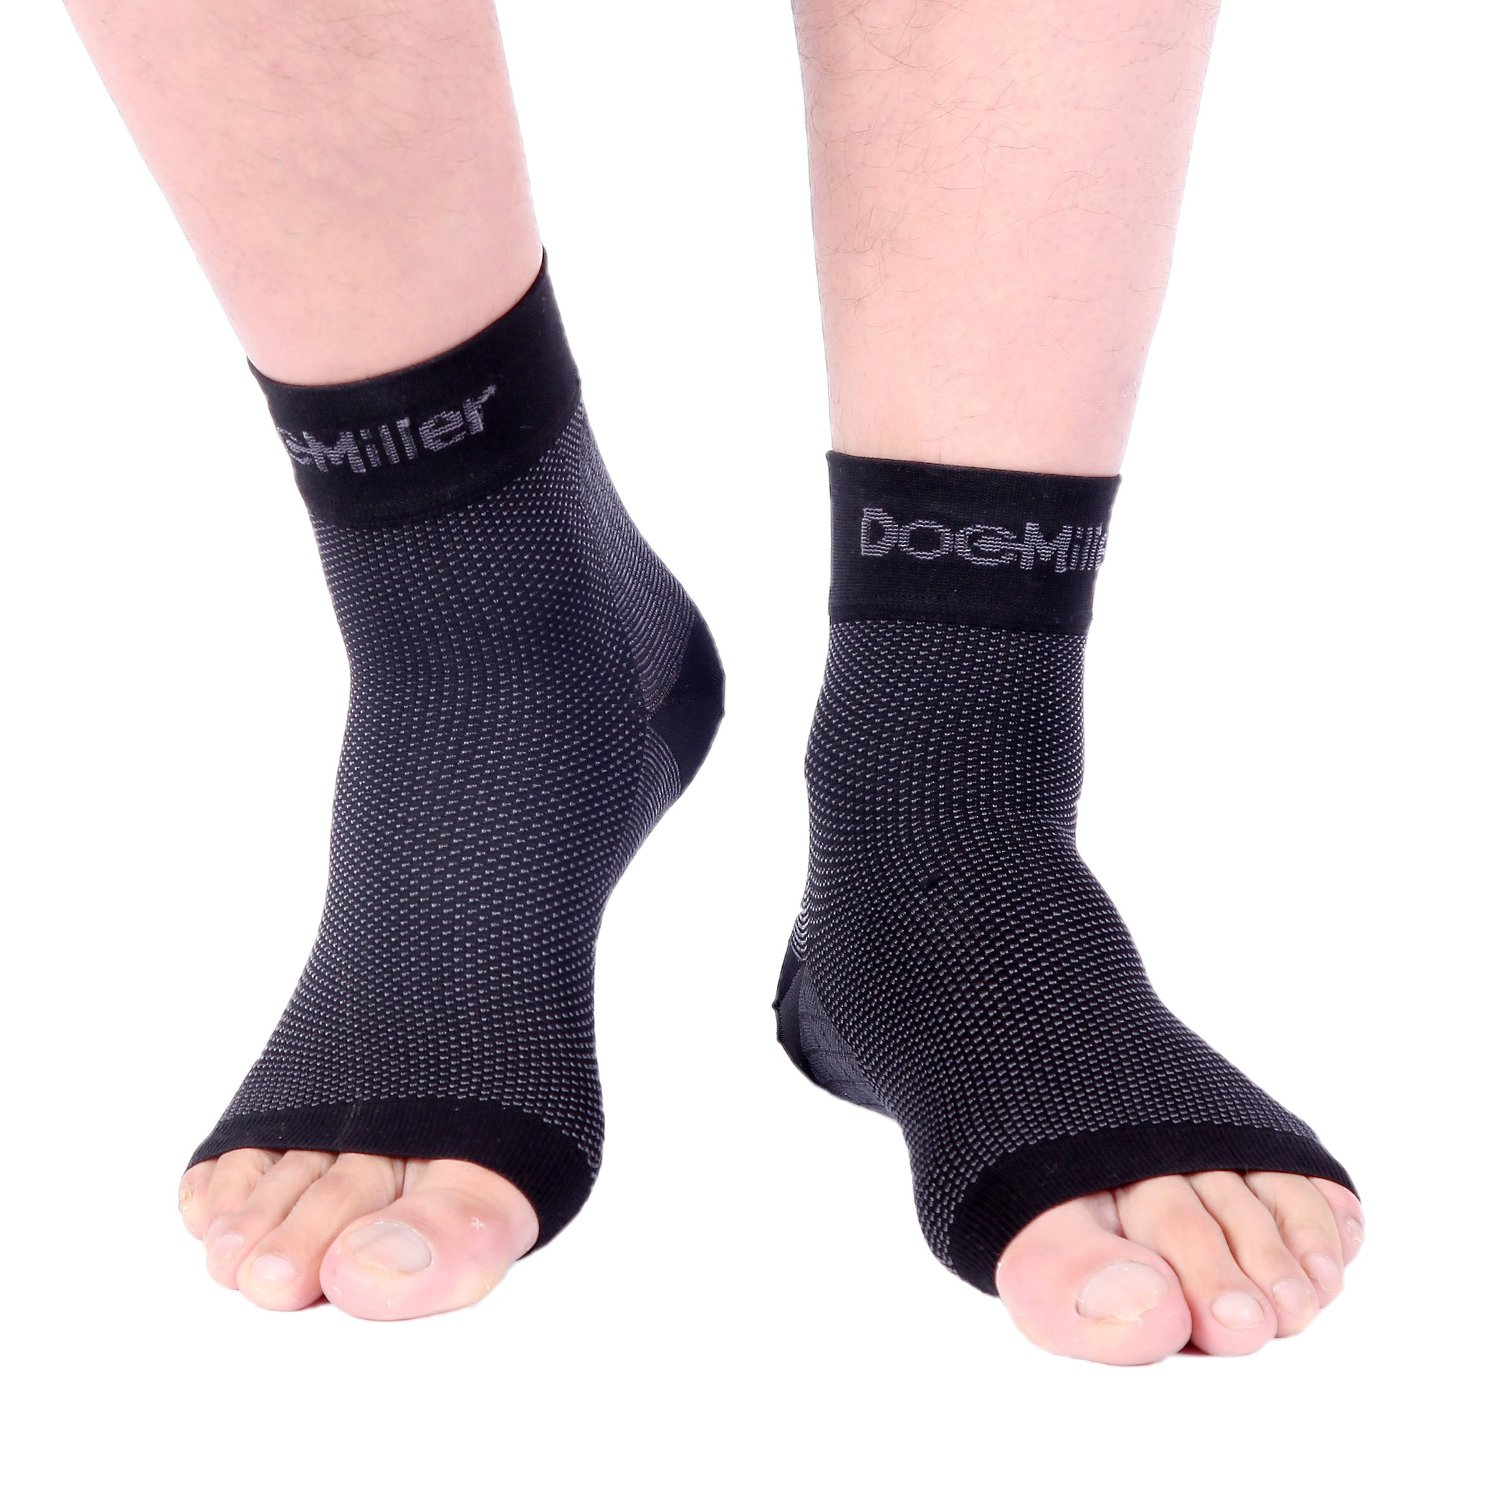 Doc Miller Medical Grade Plantar Fasciitis Ankle Brace Compression Anklet Socks for Foot Joint Pain Heel Spurs Achilles Tendonitis Arch Support Eases Pain Swelling 1 PAIR (Black, Large)